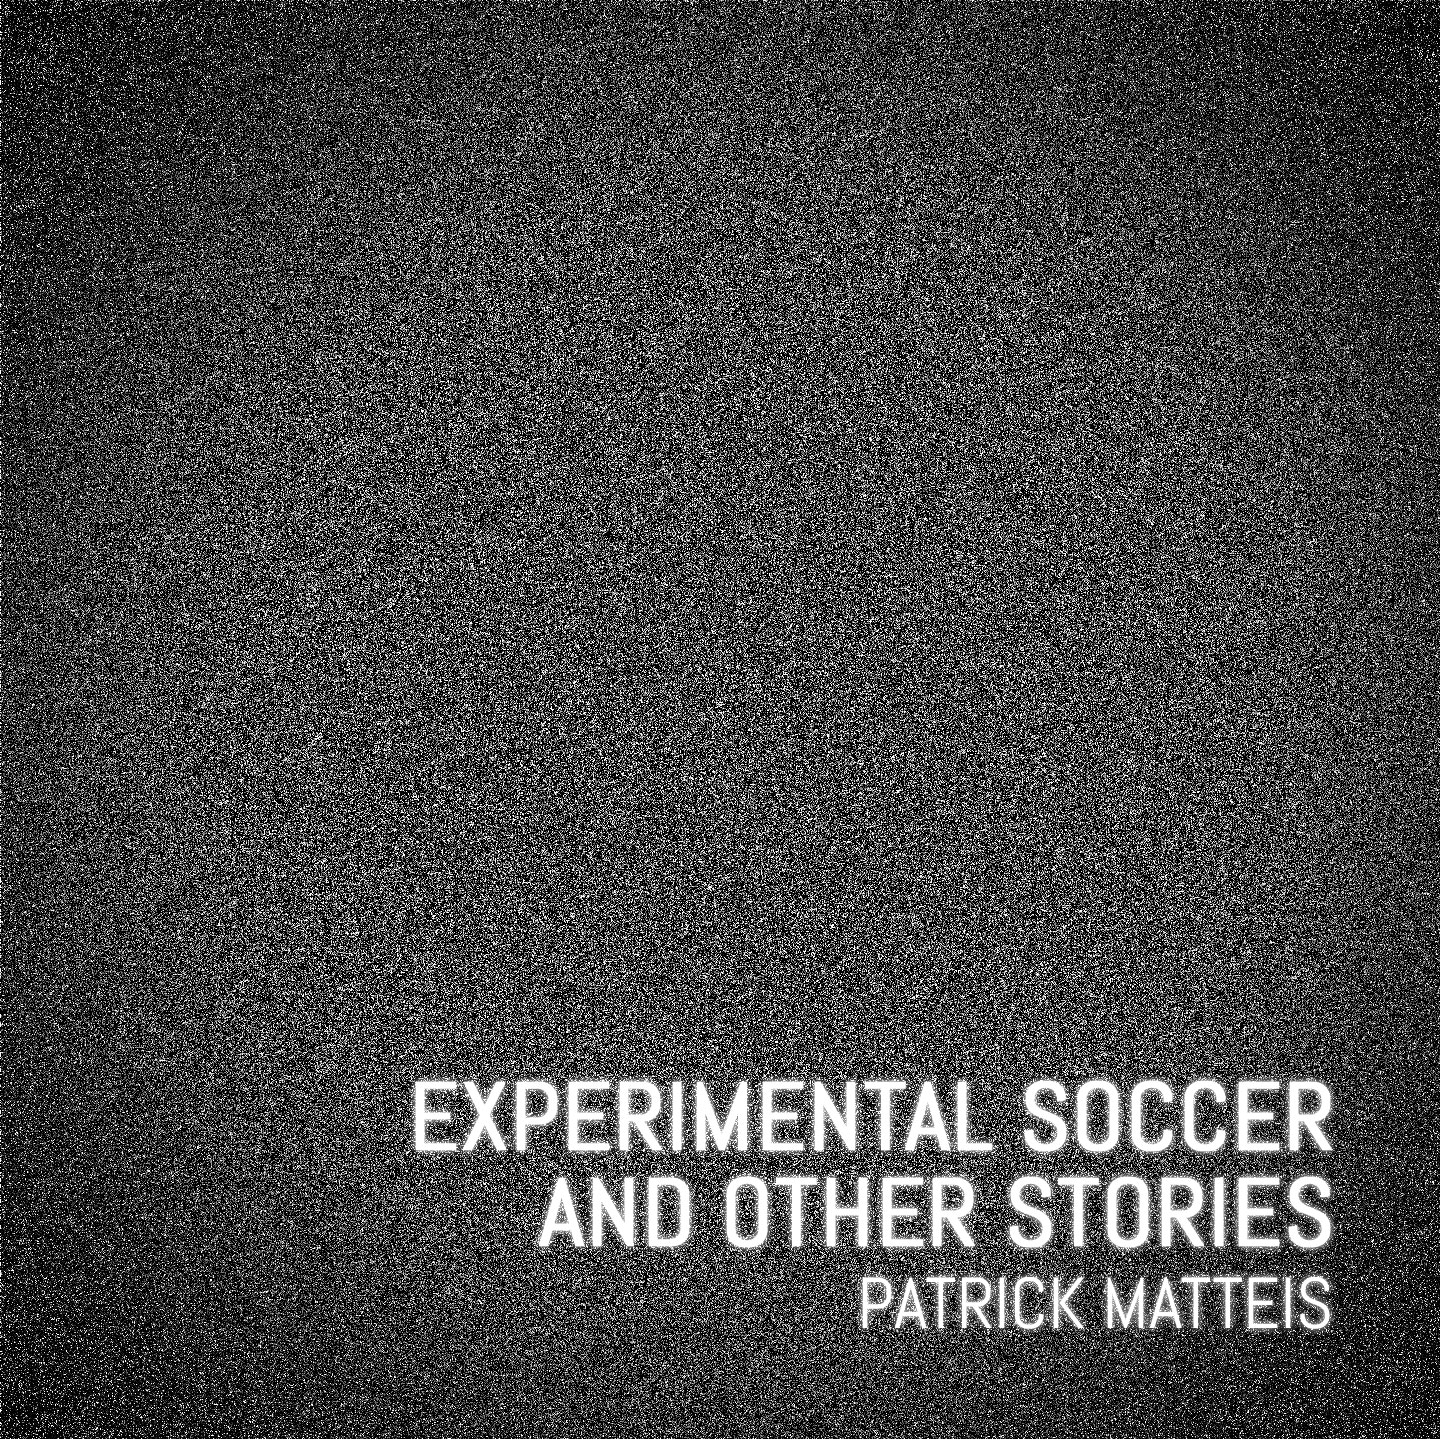 Experimental Soccer And Other Stories